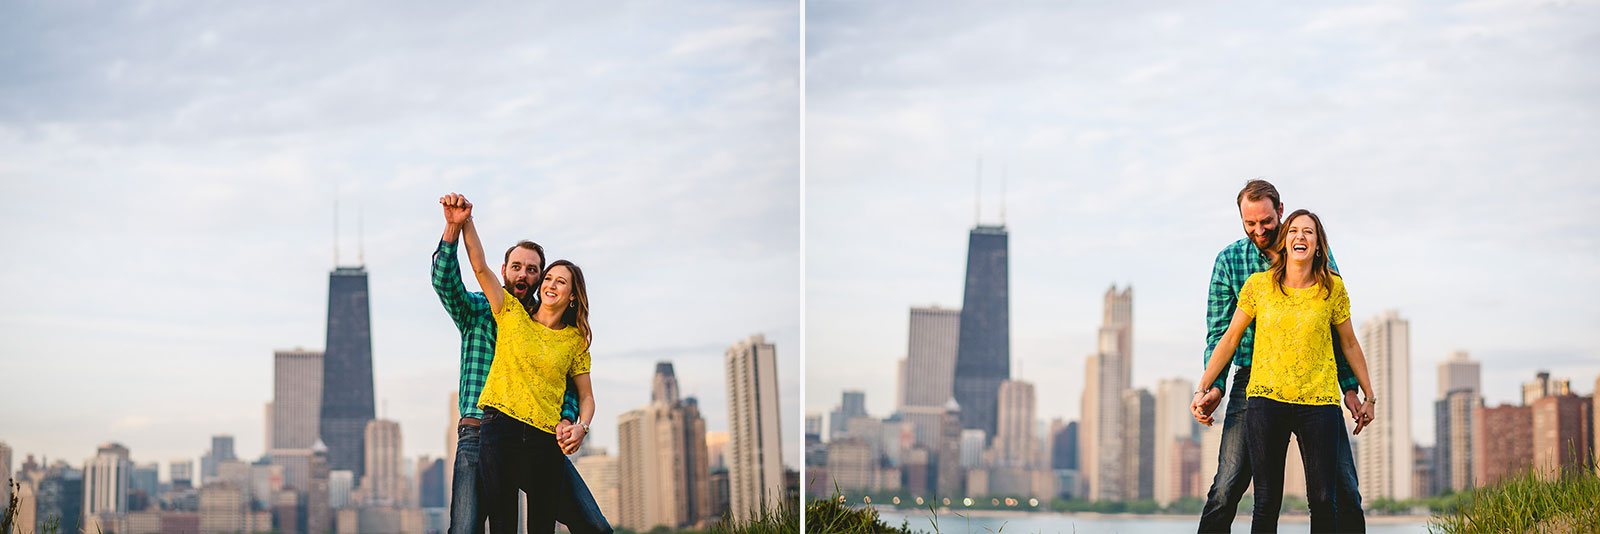 15 really authentic engagement photos in chicago - Chicago Skyline Engagement Session Photographer // Rachel + Jared